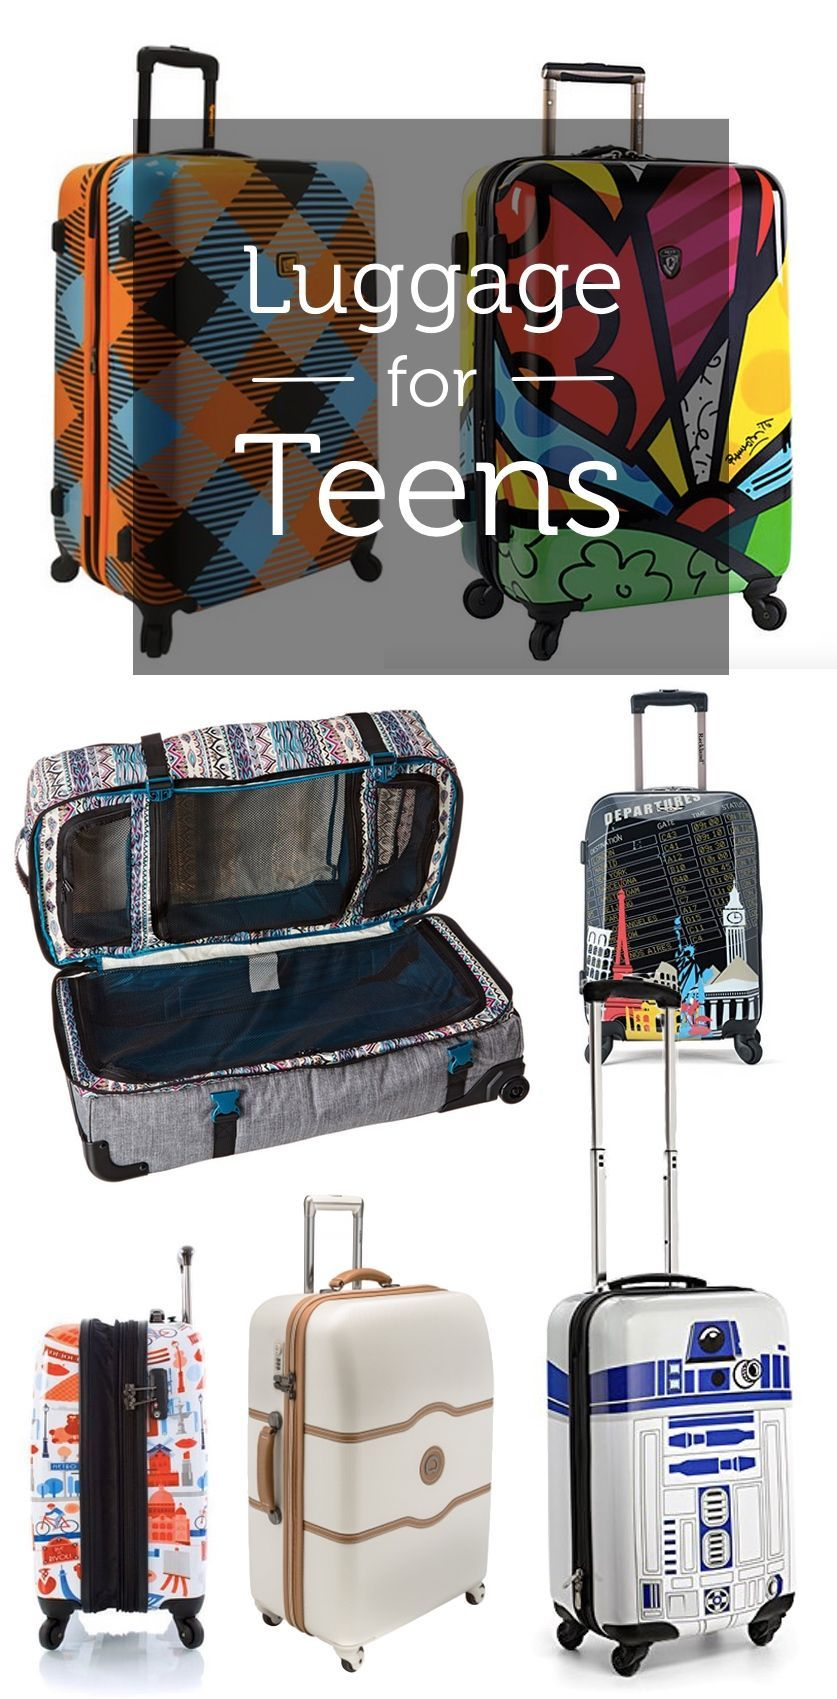 Luggage for Teens  The best and coolest luggage perfect for teen travelers. 3a4371dc159d5